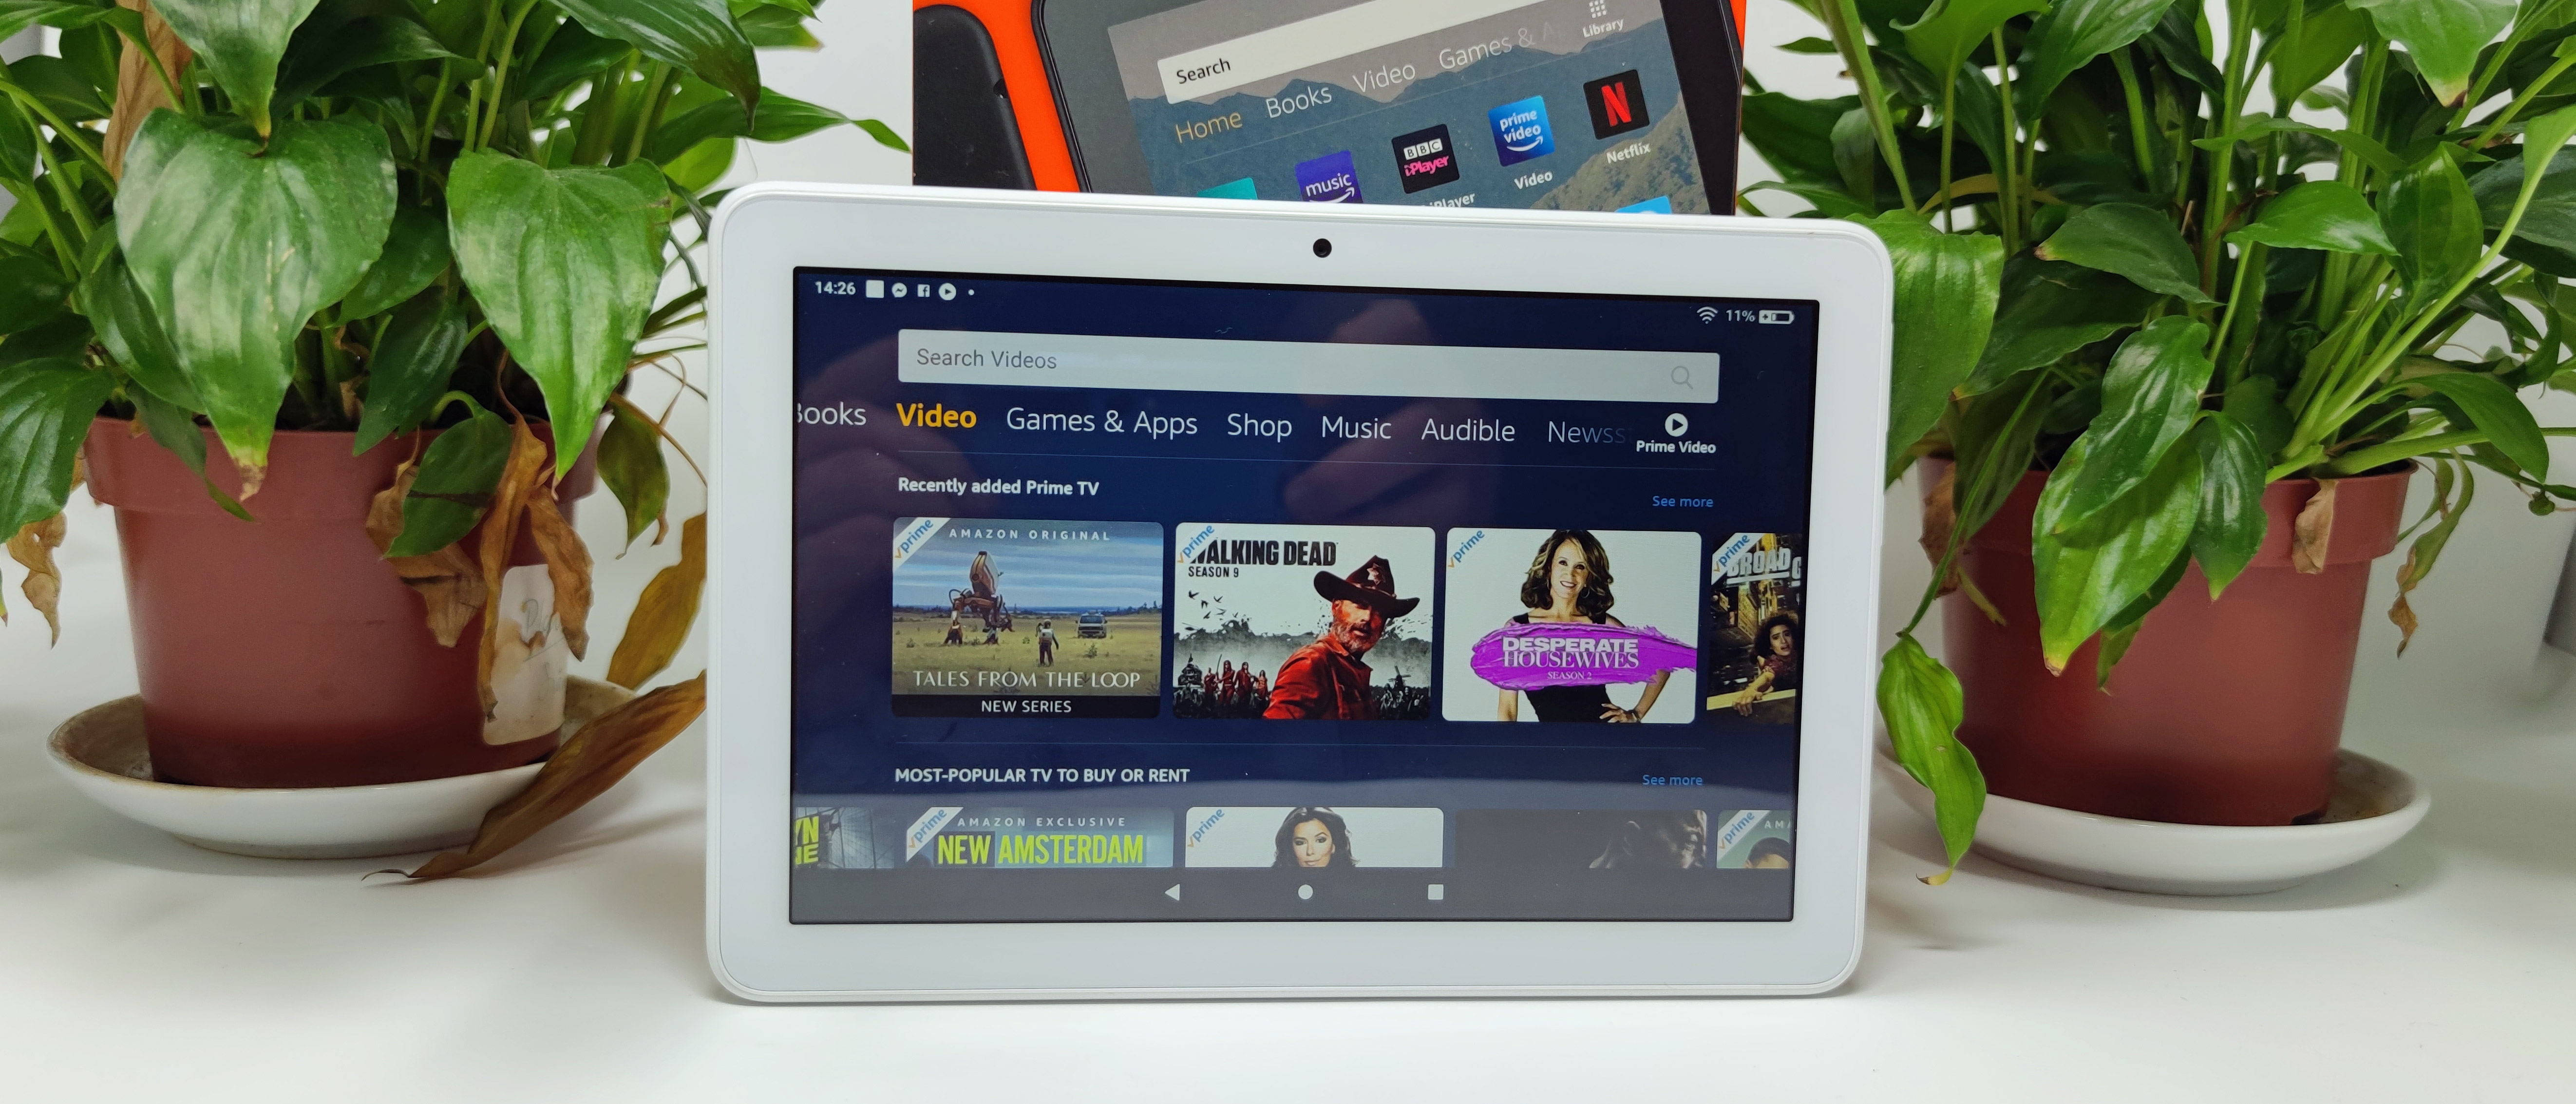 Amazon Fire Hd 8 2020 Review Techradar